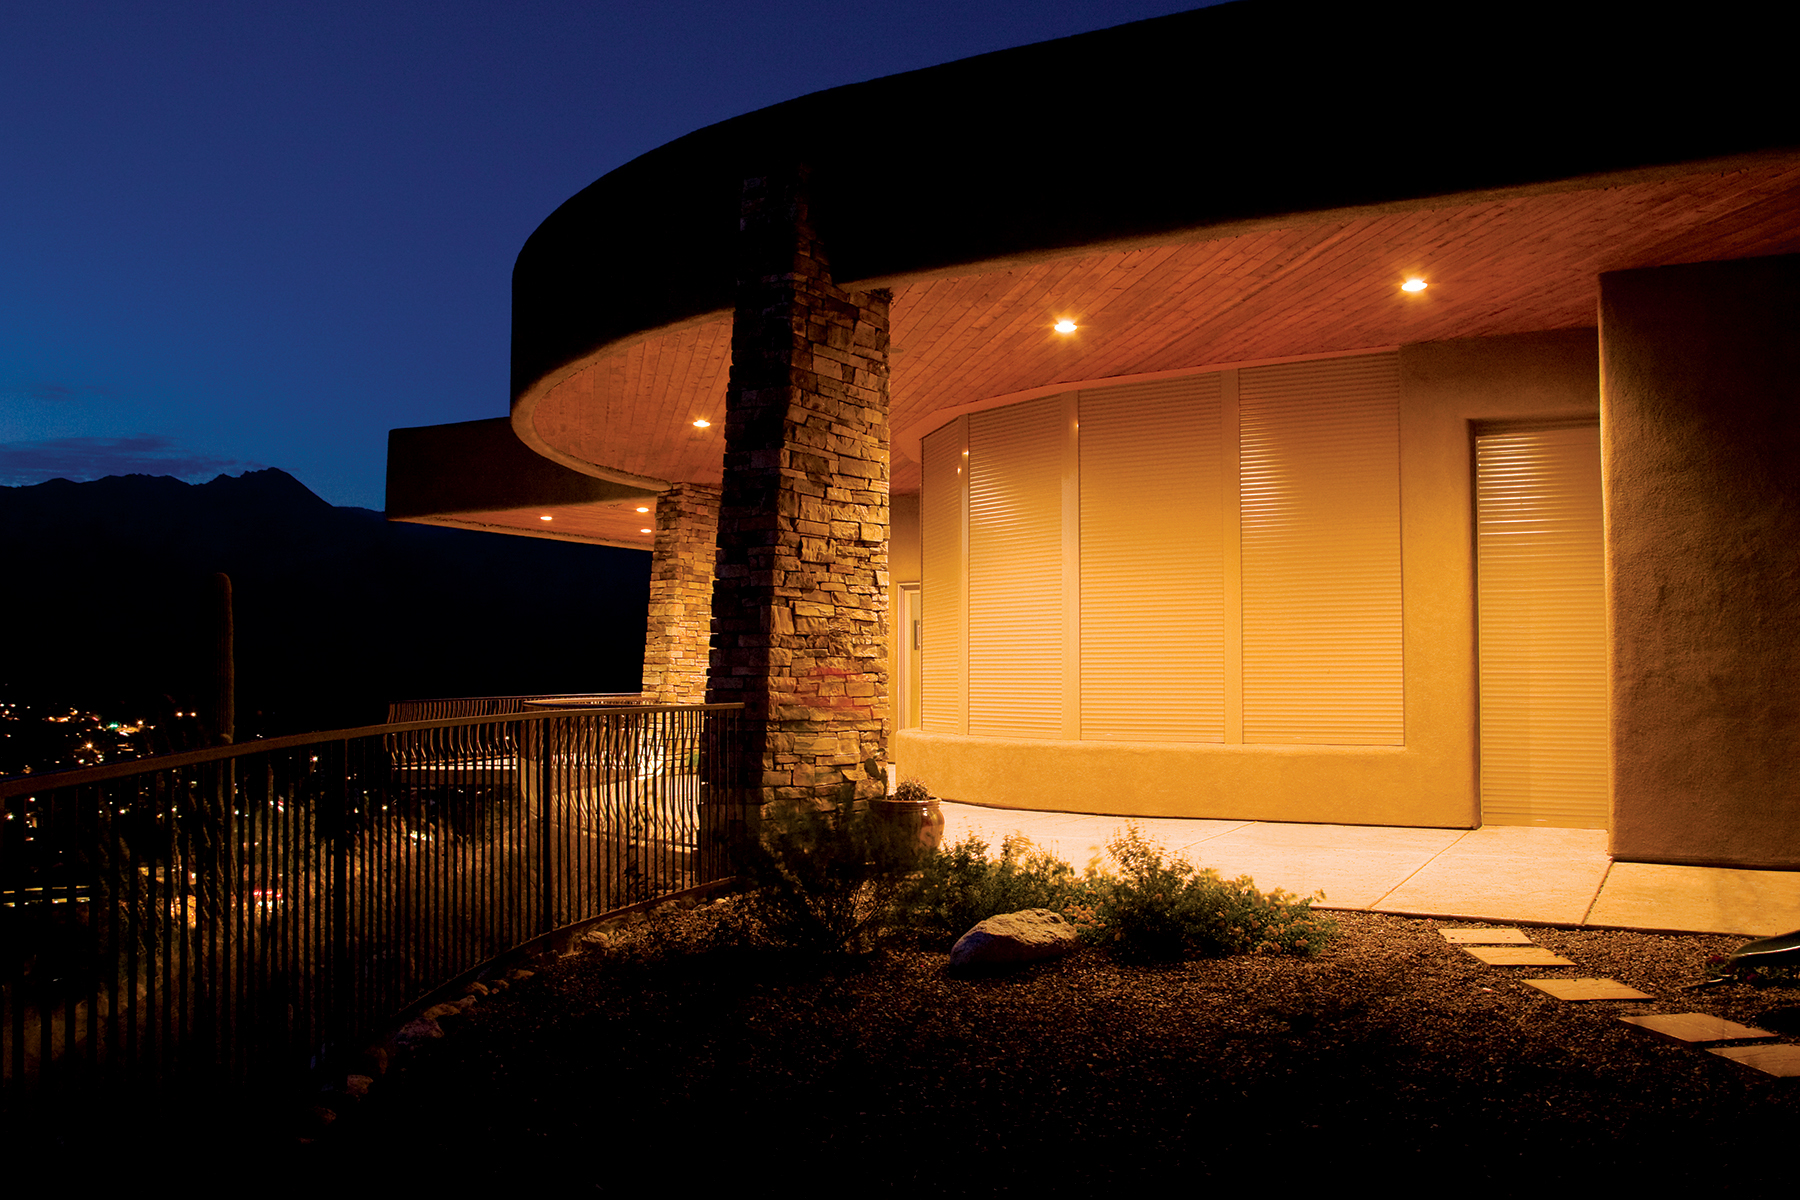 Consider Exterior Shades for added privacy and security.